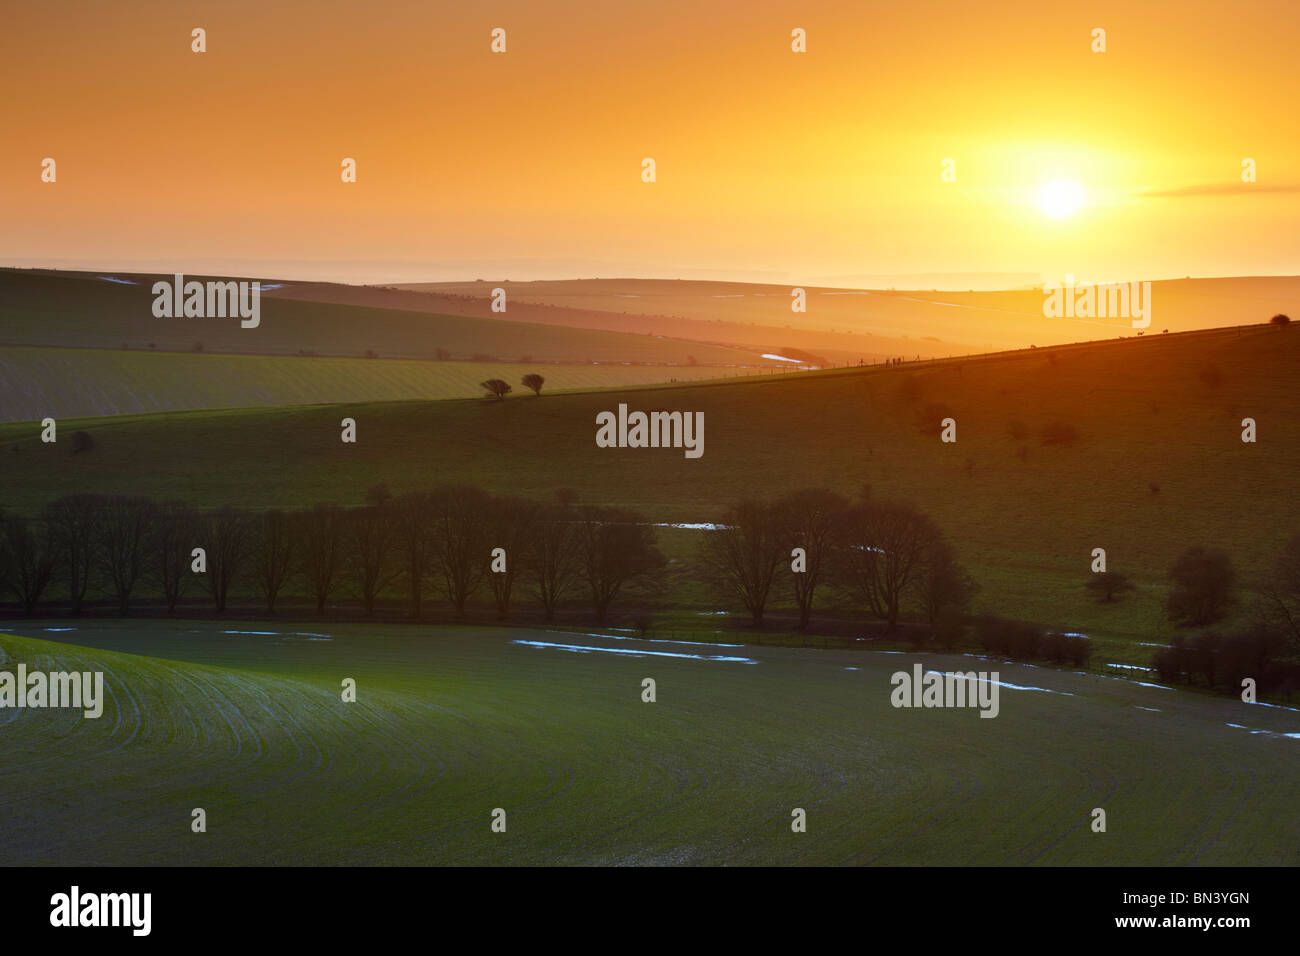 South Downs sunrise near Standean Bottom. Lying snow still visible around the edge of the fields. - Stock Image